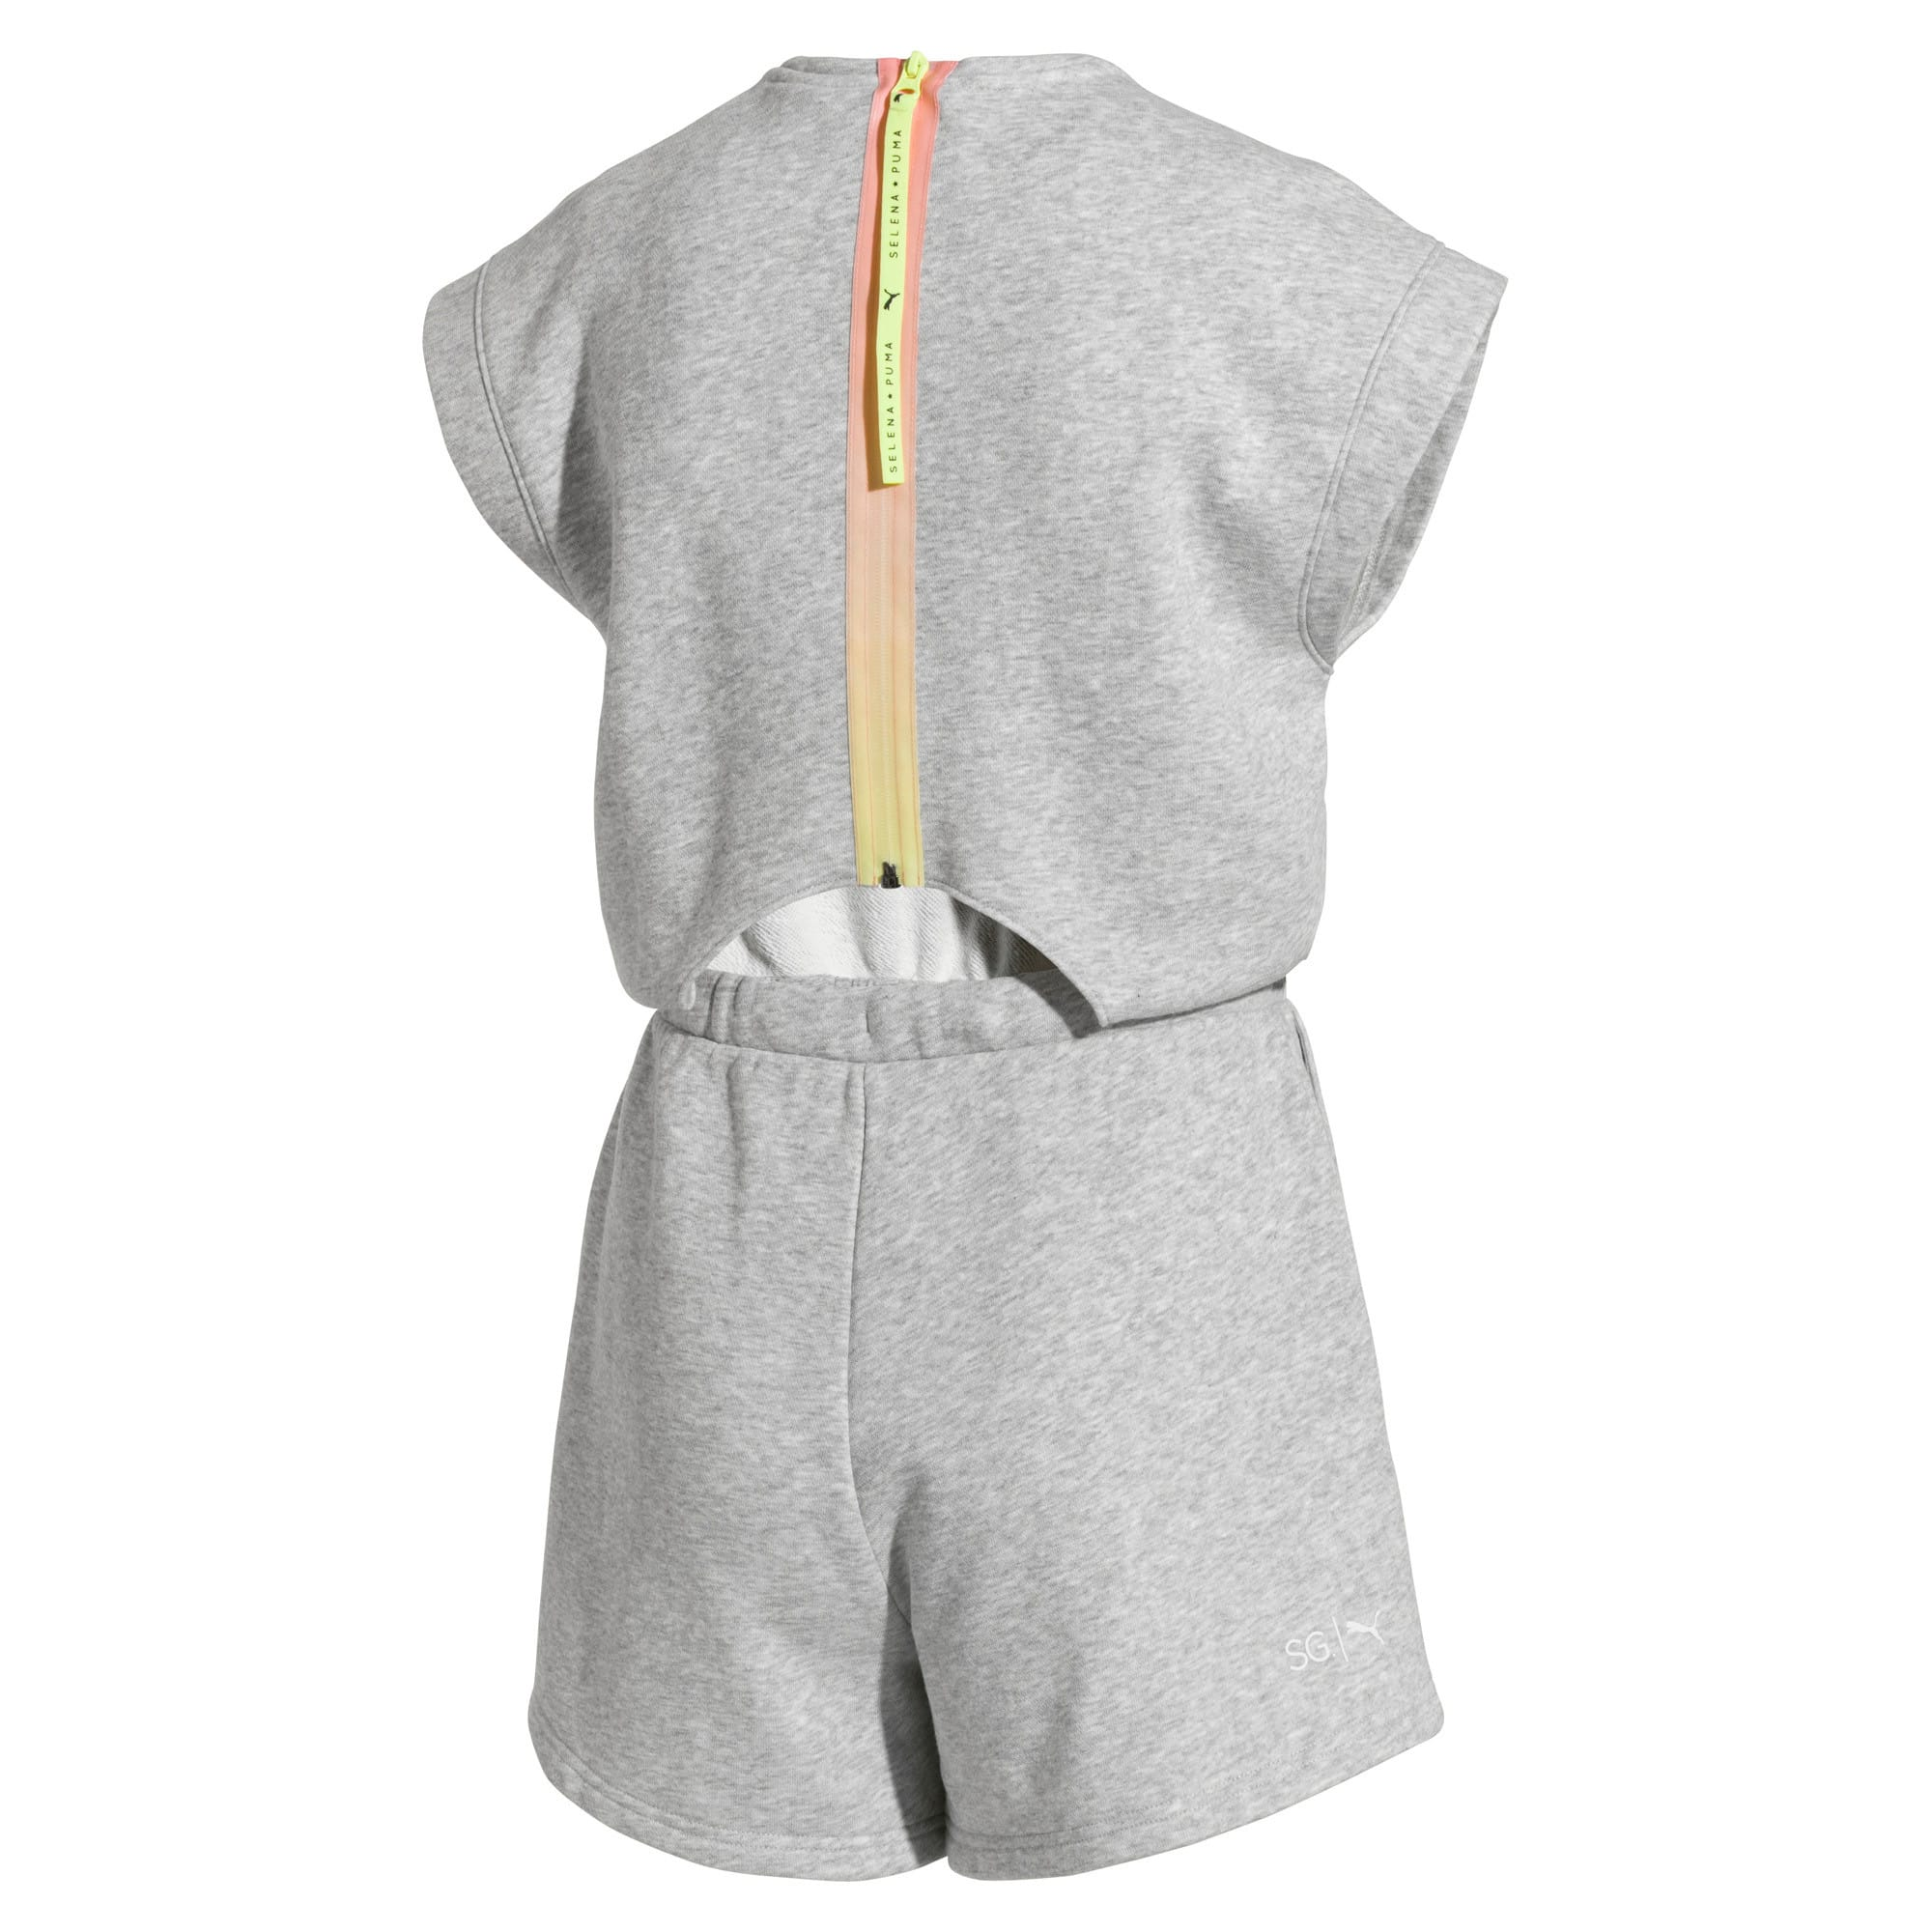 Thumbnail 5 of PUMA x SELENA GOMEZ Women's Romper, Light Gray Heather, medium